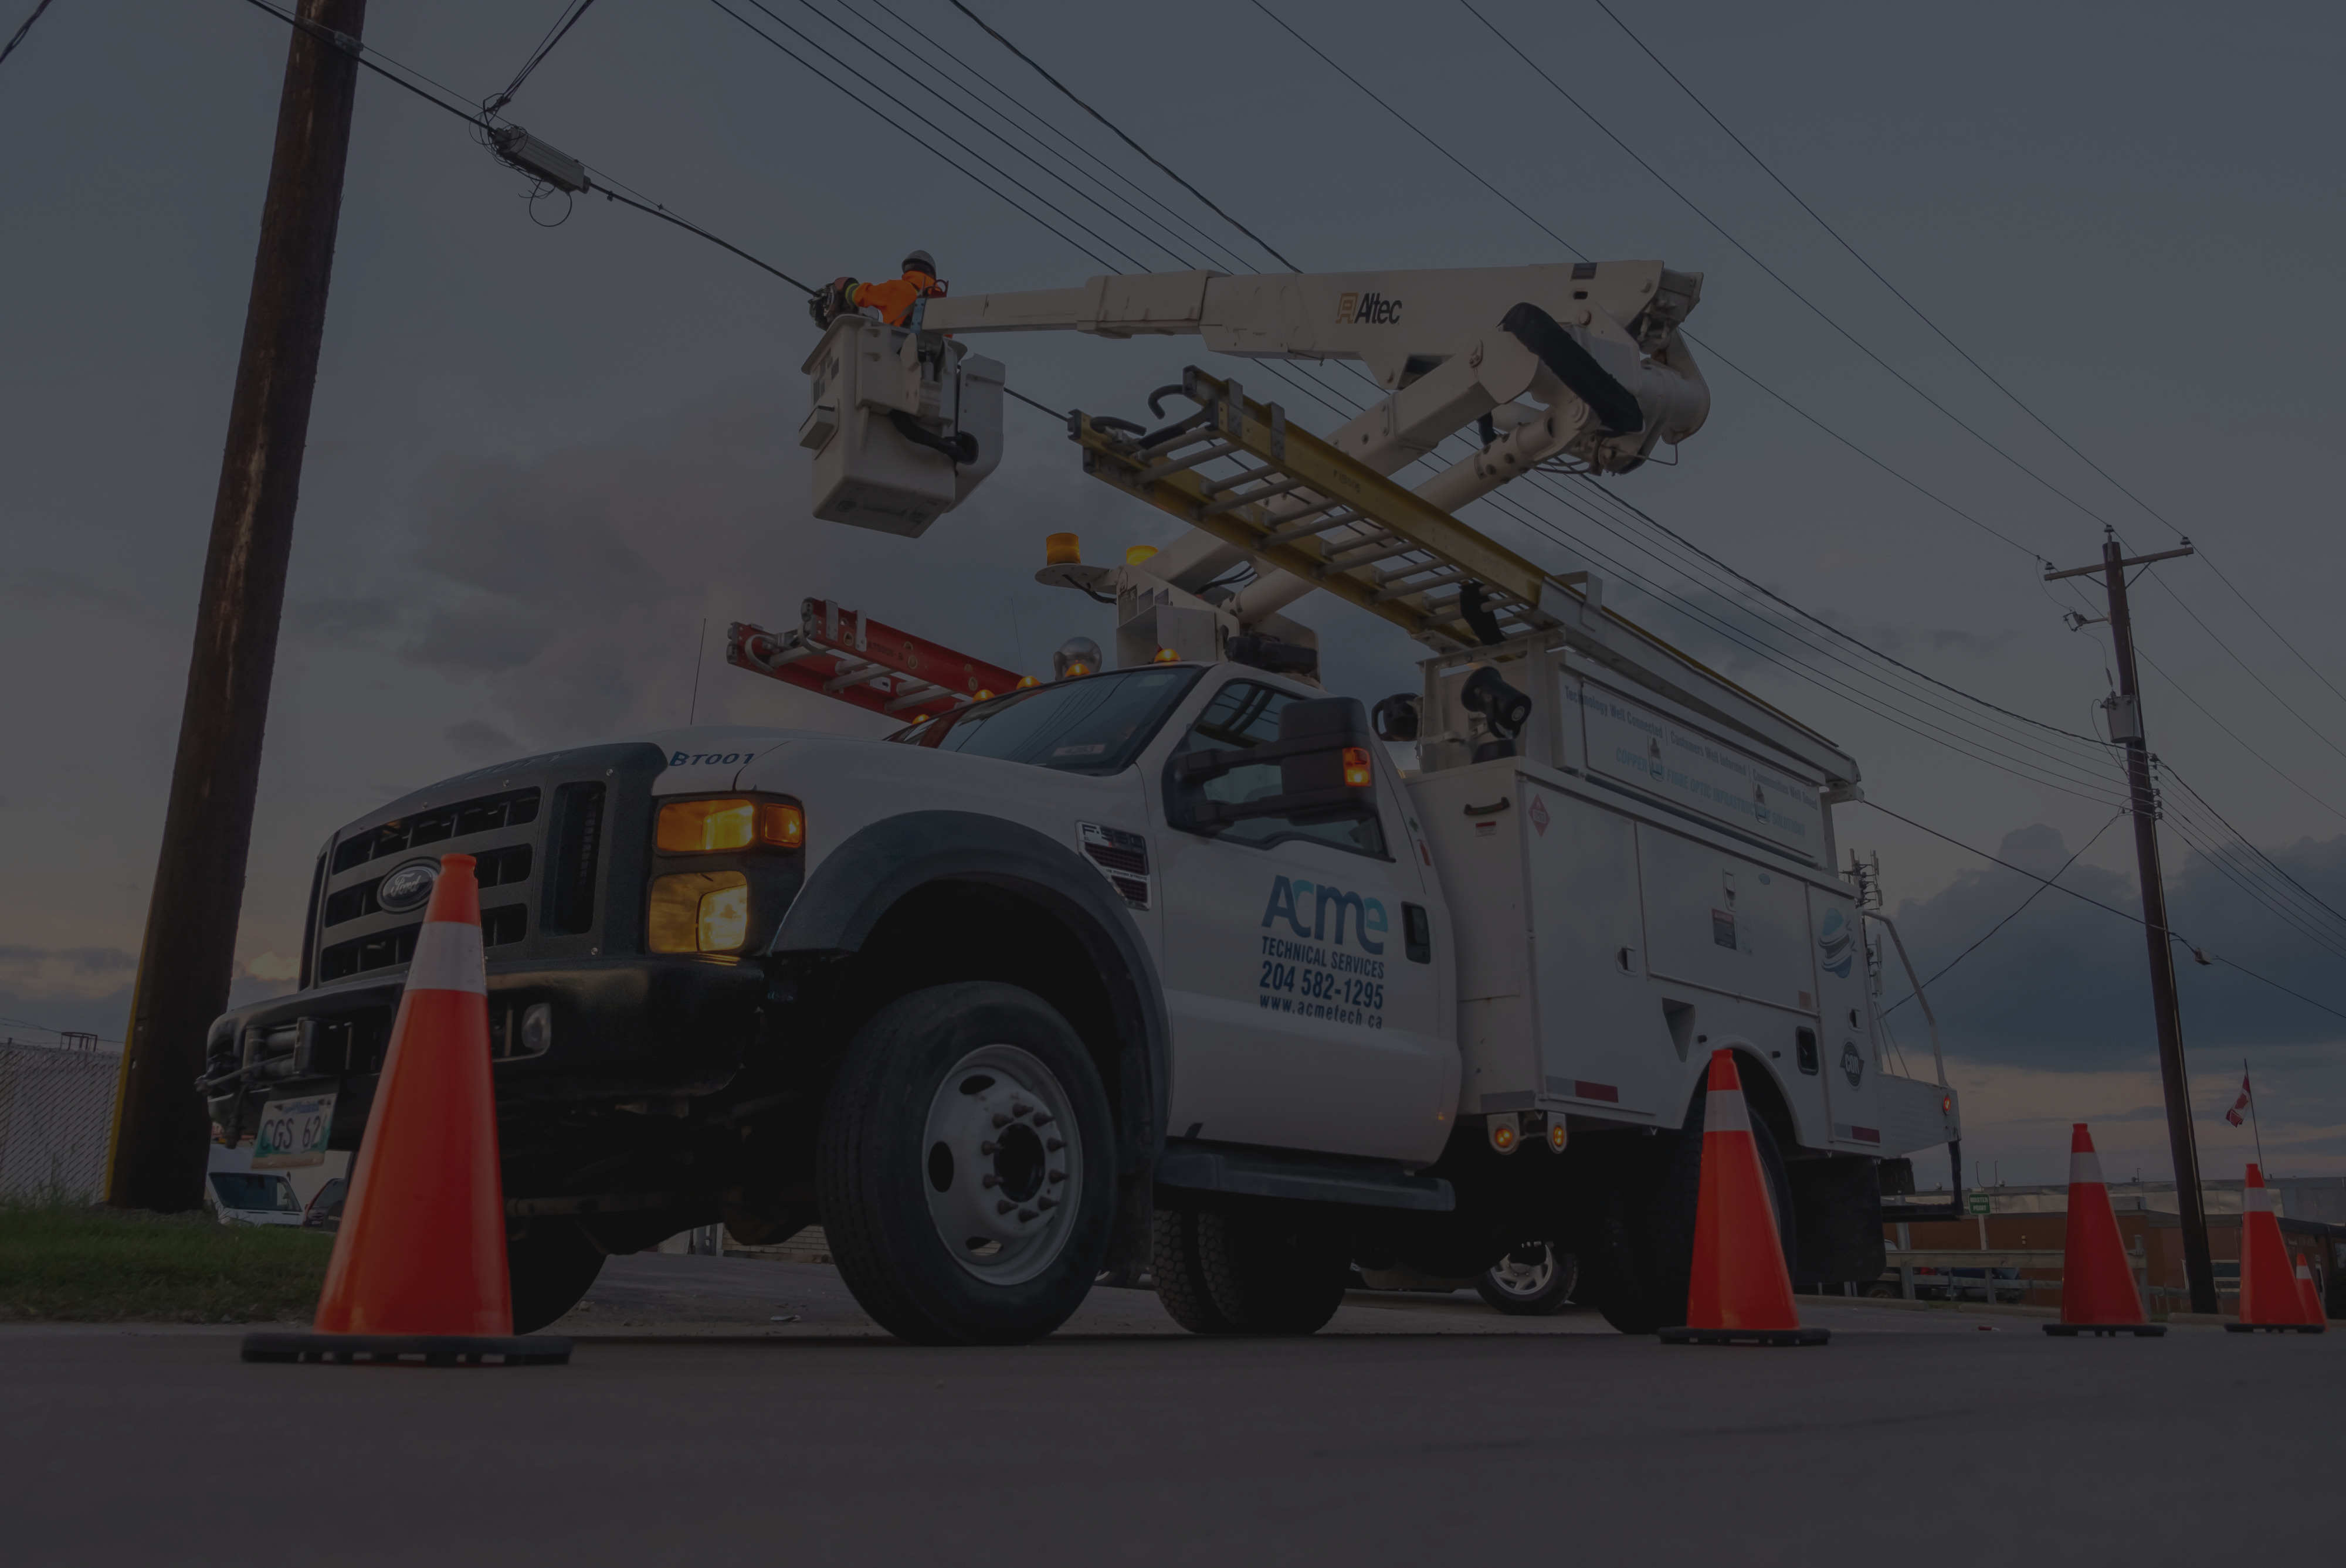 Background image of a man in a bucket truck lashing aerial copper cabling.